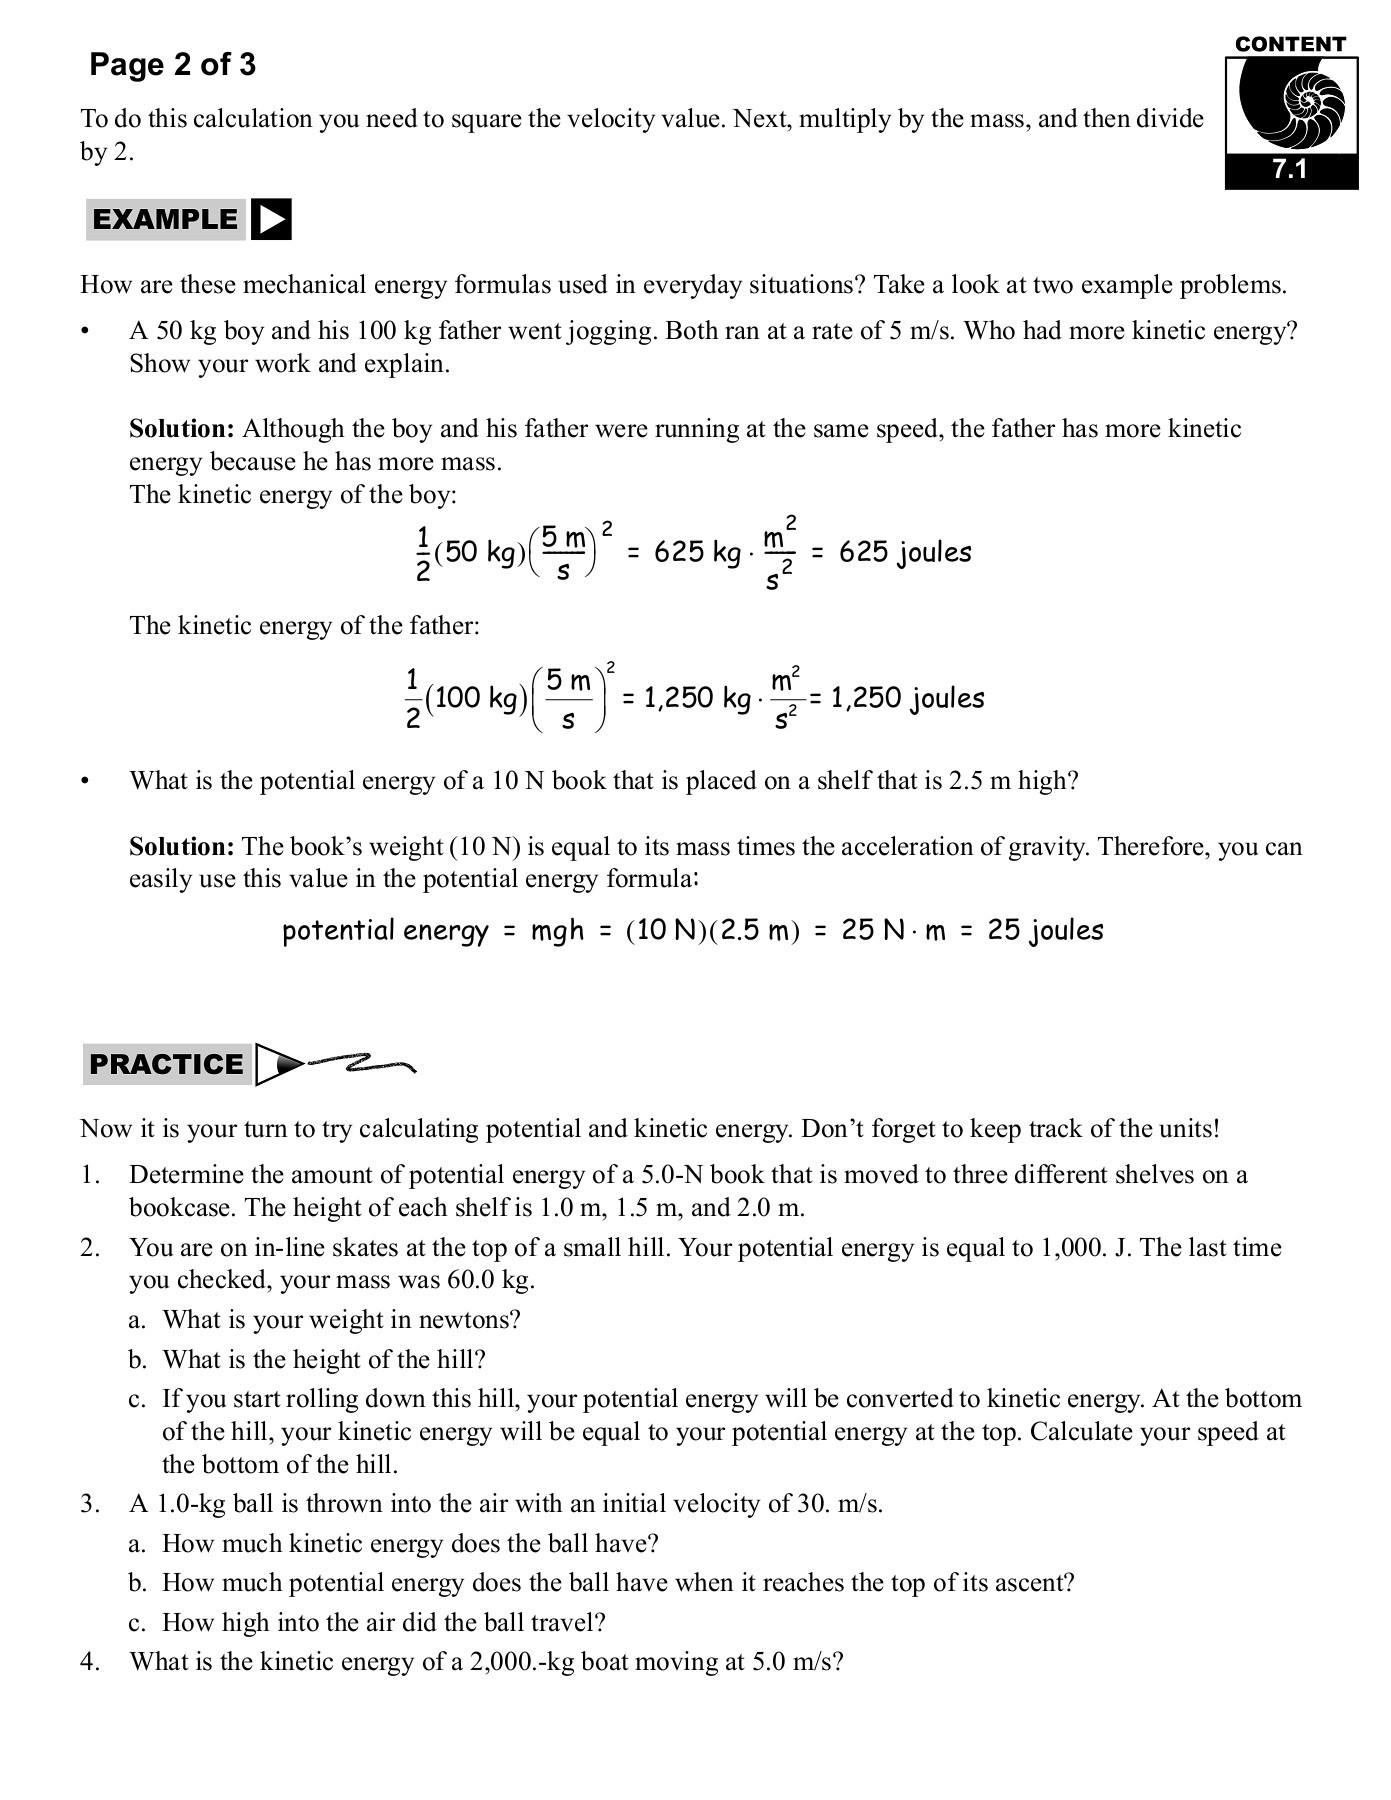 Energy Transformation Worksheet Pdf 7 1 Potential and Kinetic Energy Cpo Science Pages 1 29